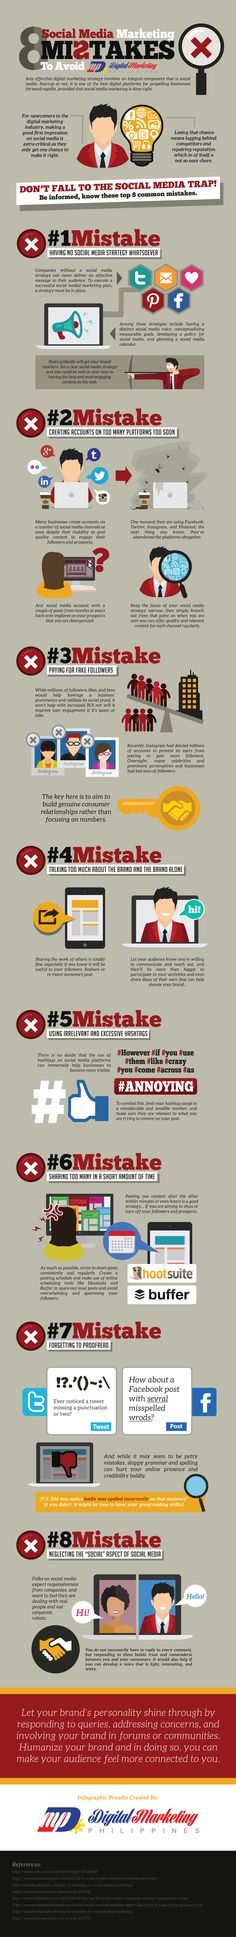 8 social media marketing mistakes to avoid (Infographic) | .risinghttp://www.solvemyhow.com/2017/04/top-torrent-sites.html